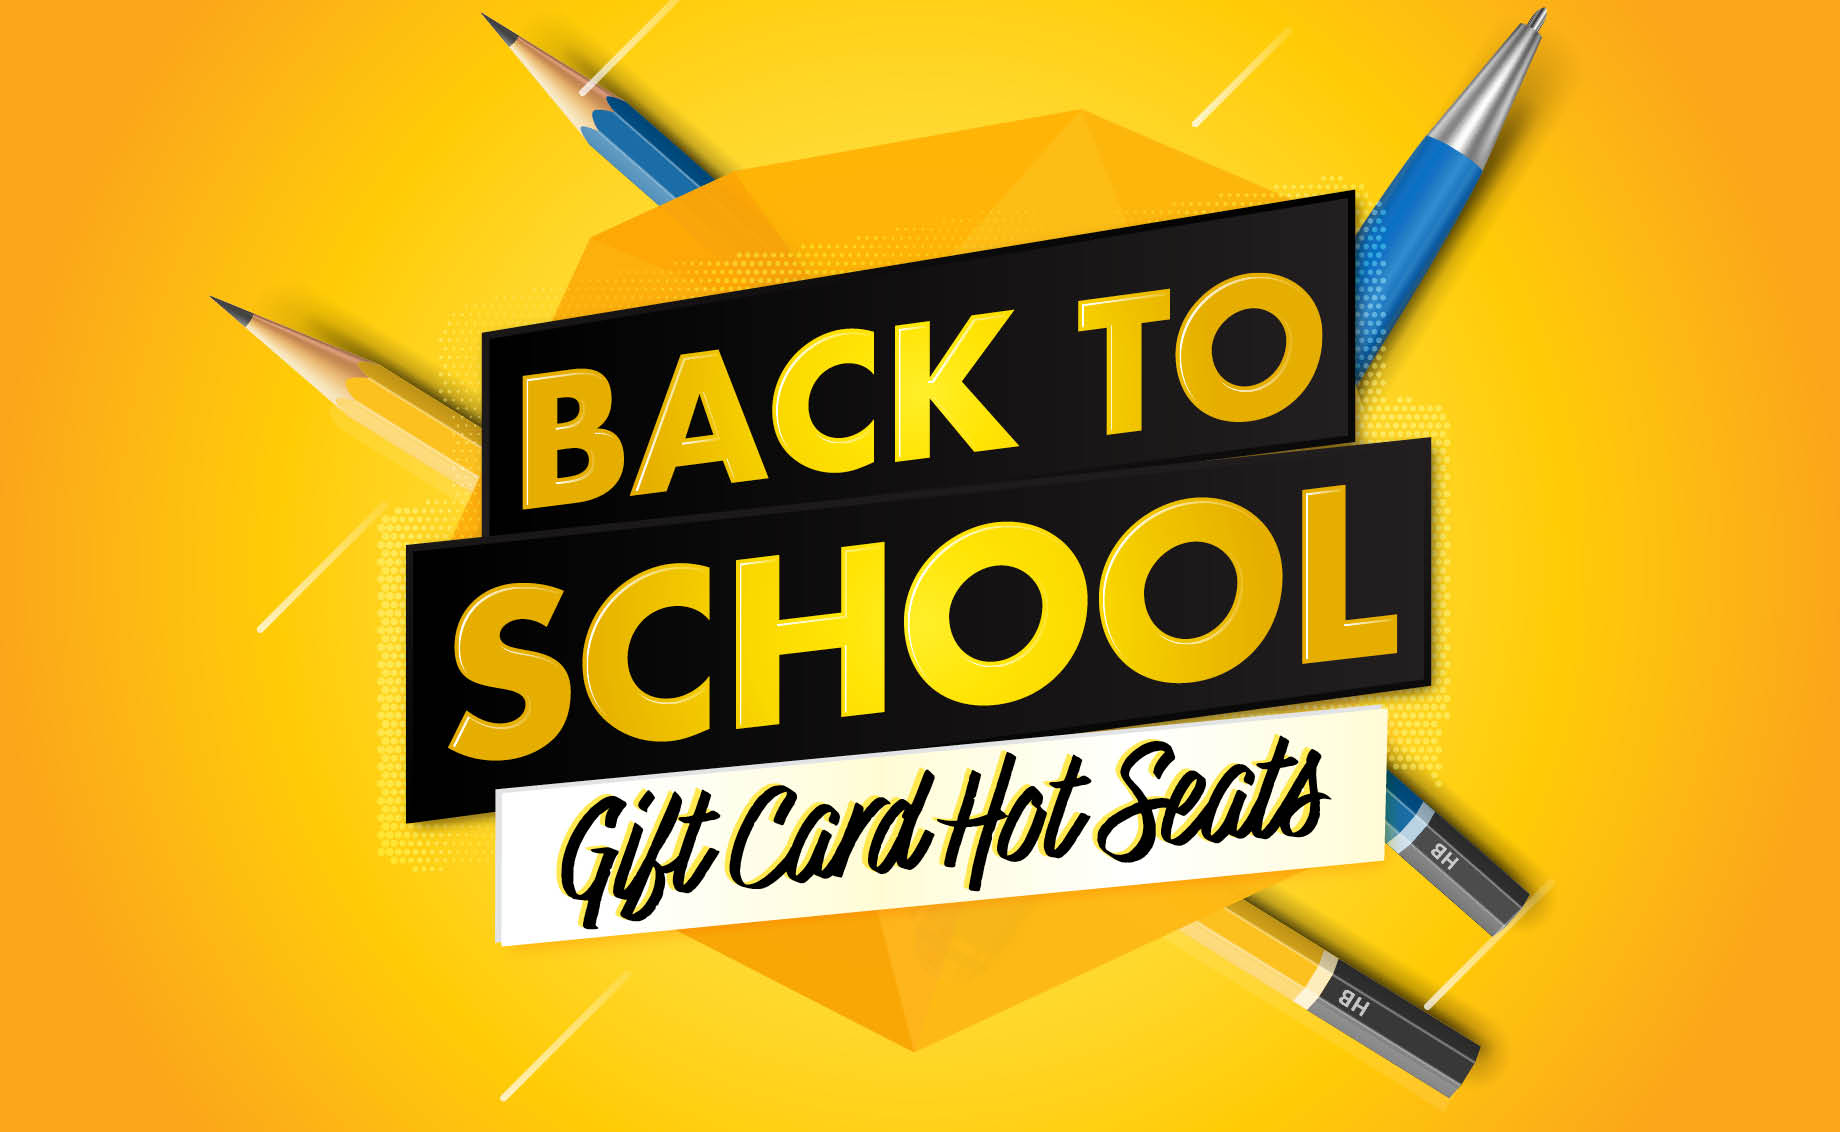 Back to School Gift Card Hot Seats